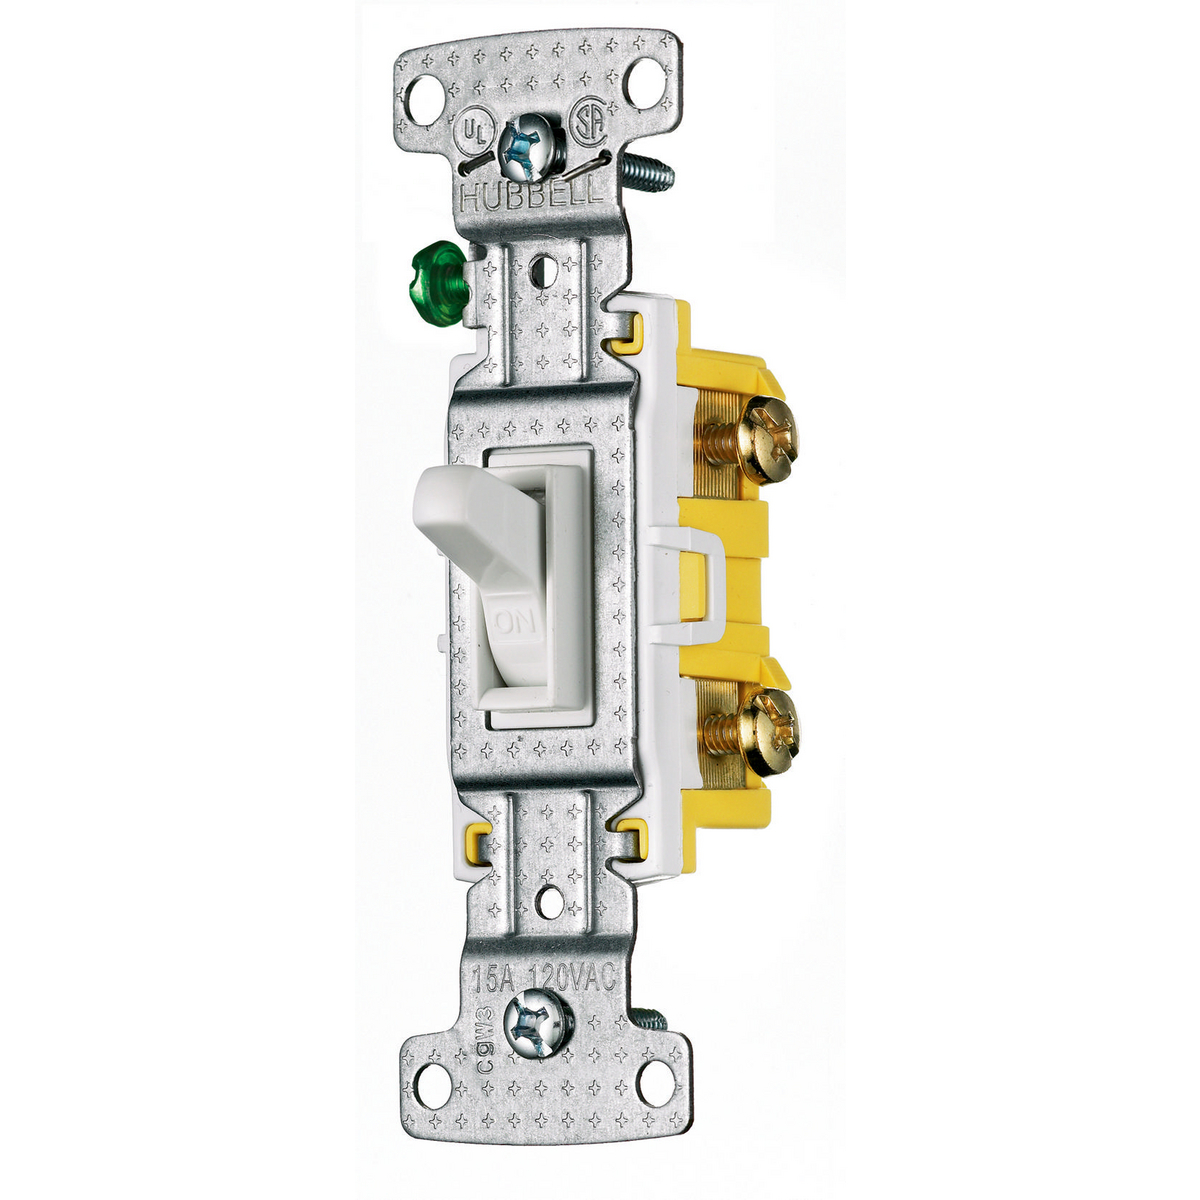 Switches United Electric Commercial Single Pole Toggle Switch Hubbell Rs115sw Wiring Device Kellems Tradeselect And Lightingcontrols Residential Grade